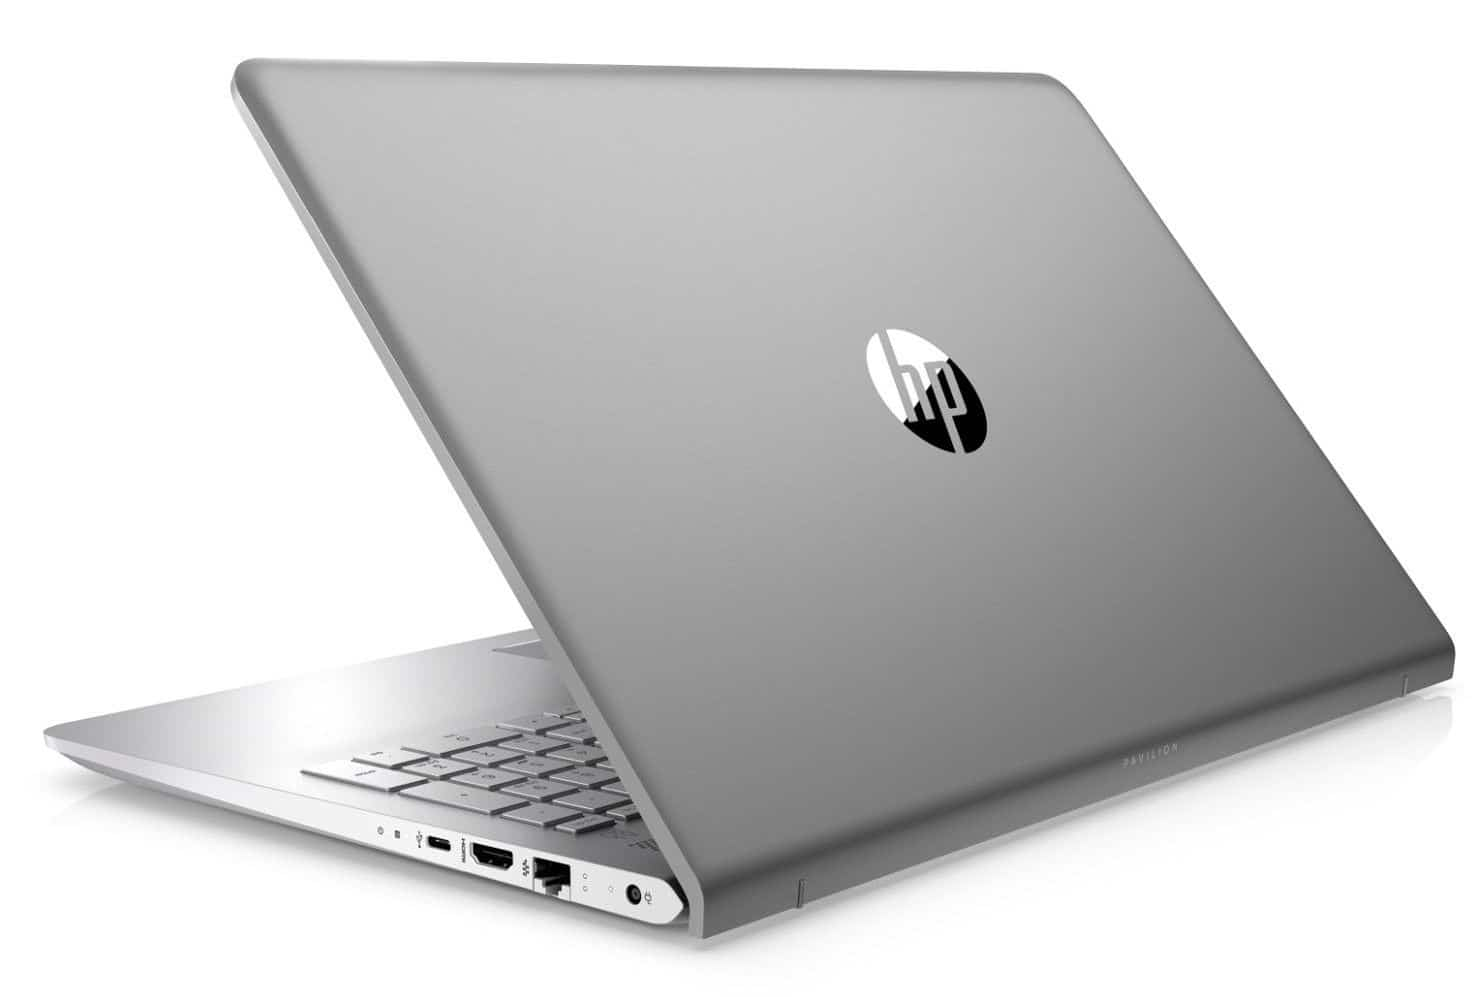 HP Pavilion 15-cc519nf, ultrabook 15 pouces Full i7 Kaby 940MX SSD à 879€